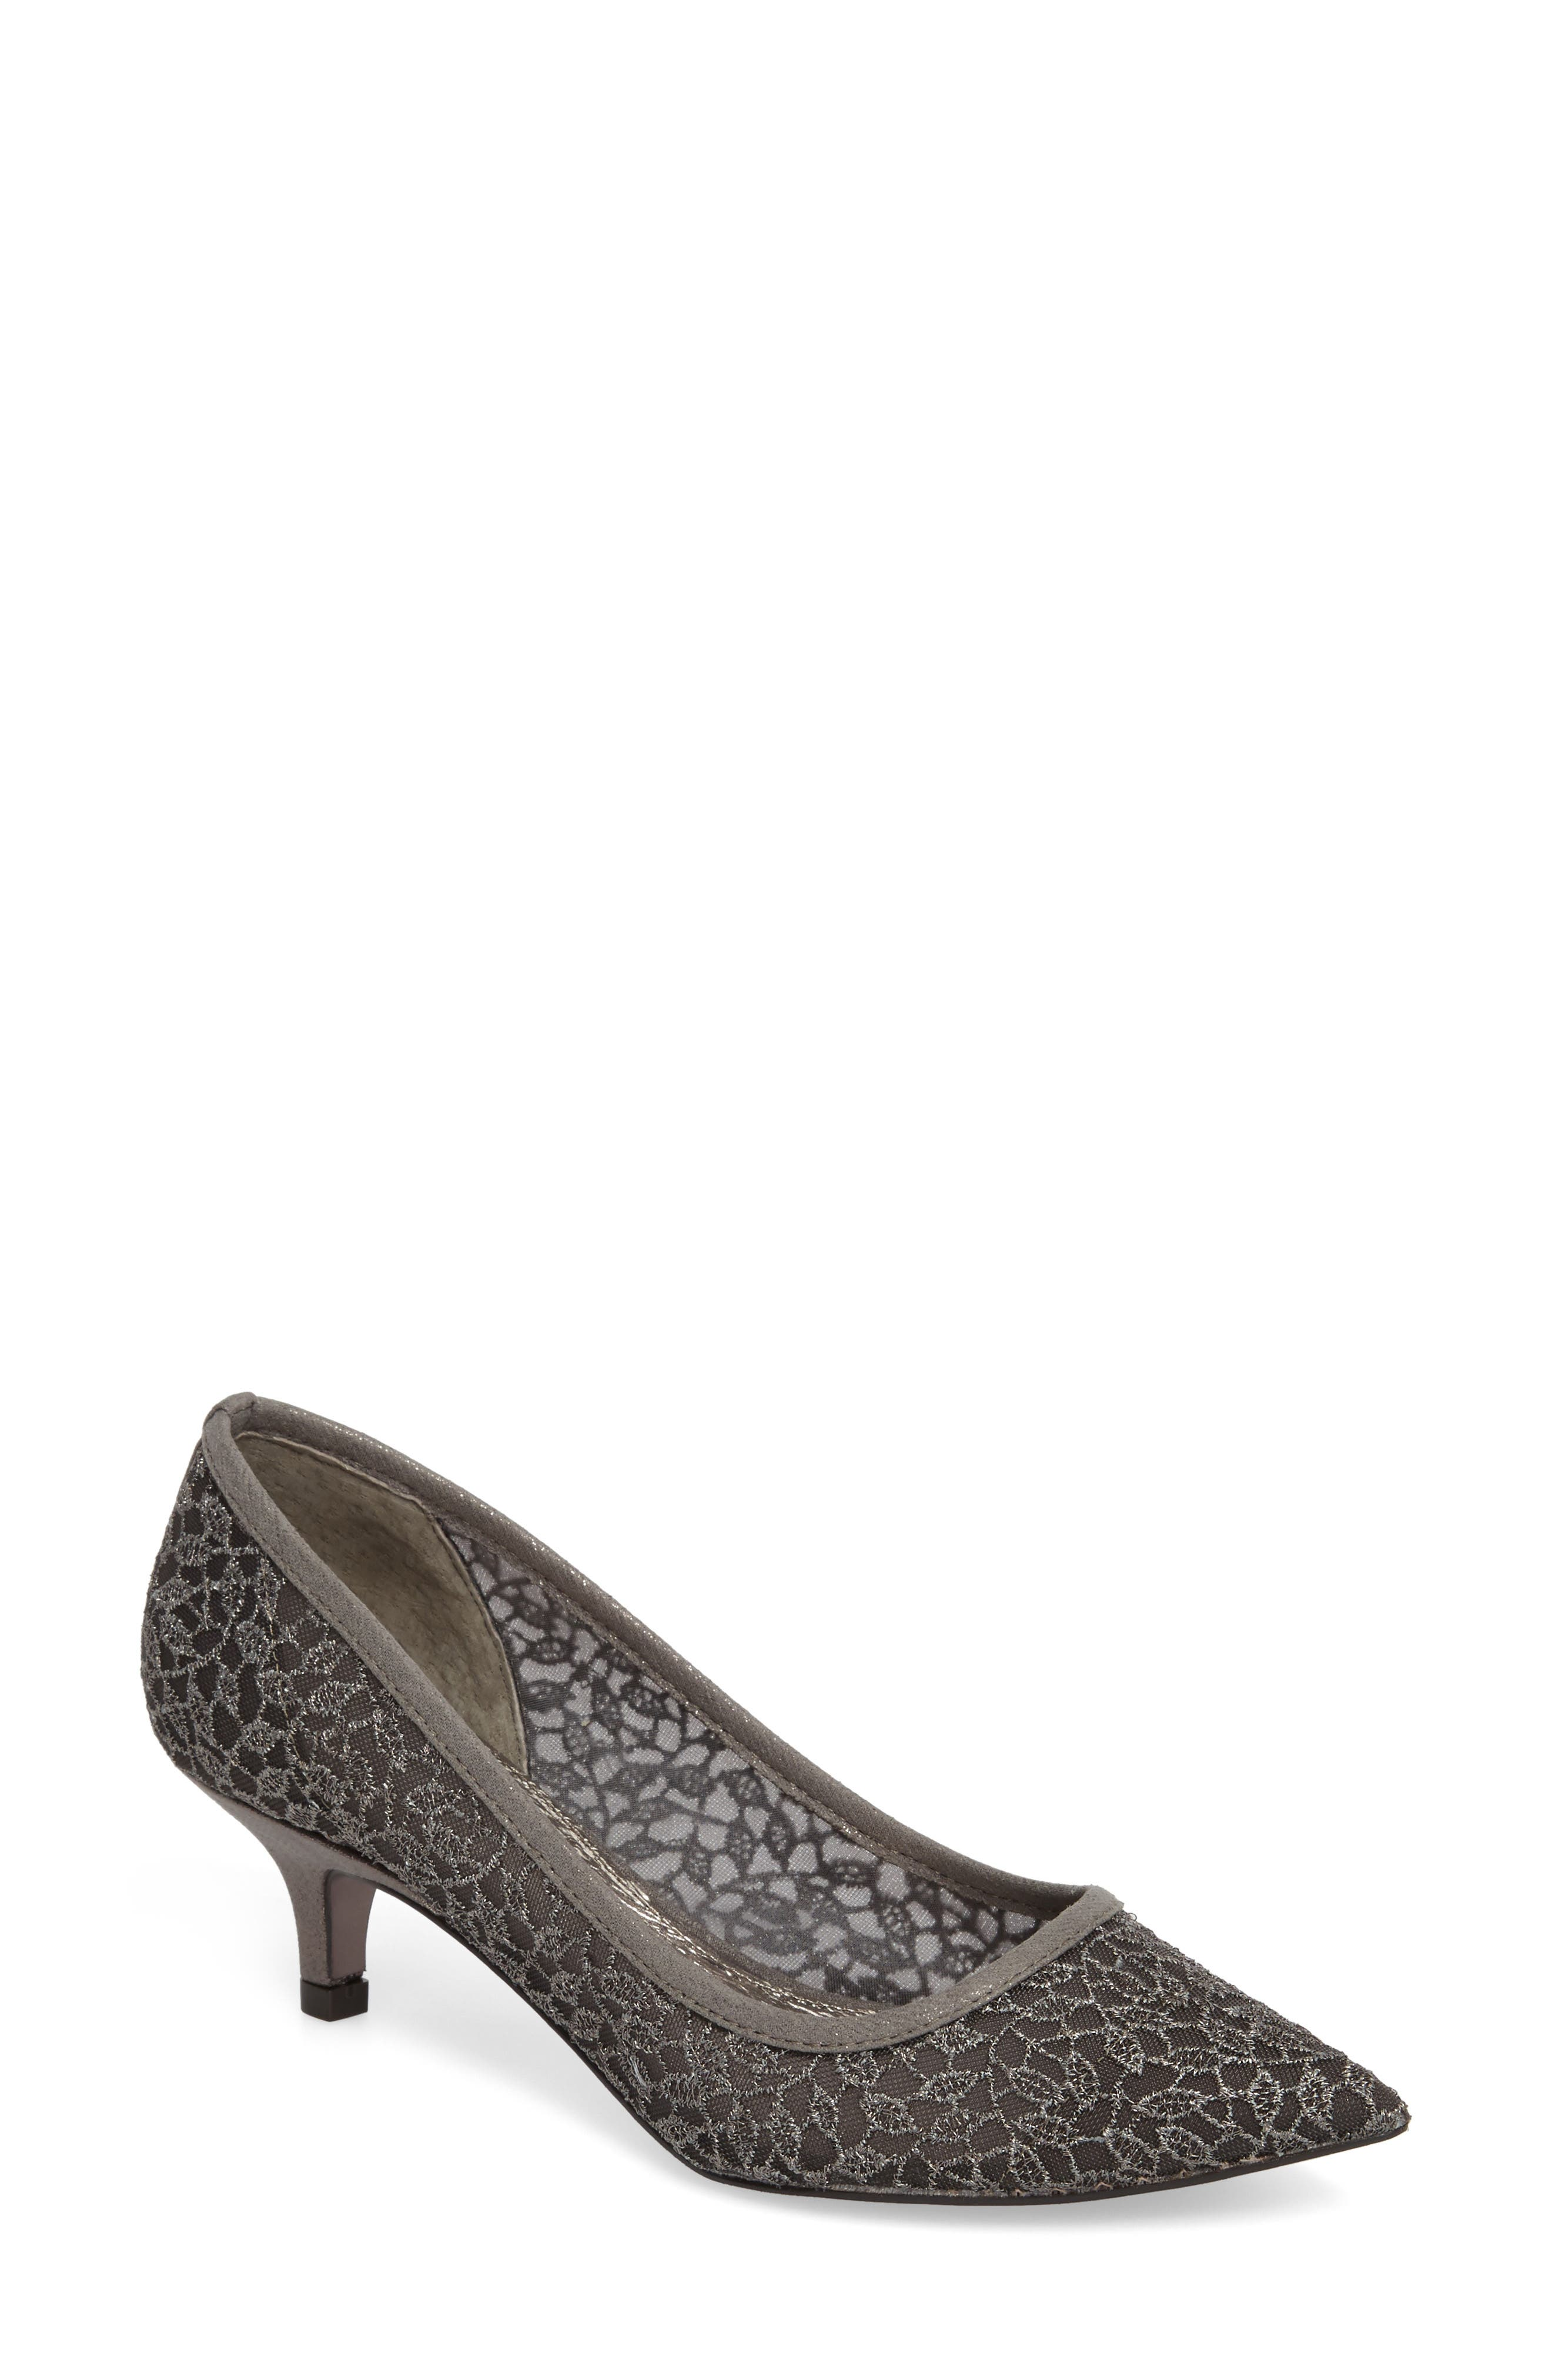 ADRIANNA PAPELL,                             'Lois' Mesh Pump,                             Main thumbnail 1, color,                             GUNMETAL LACE FABRIC